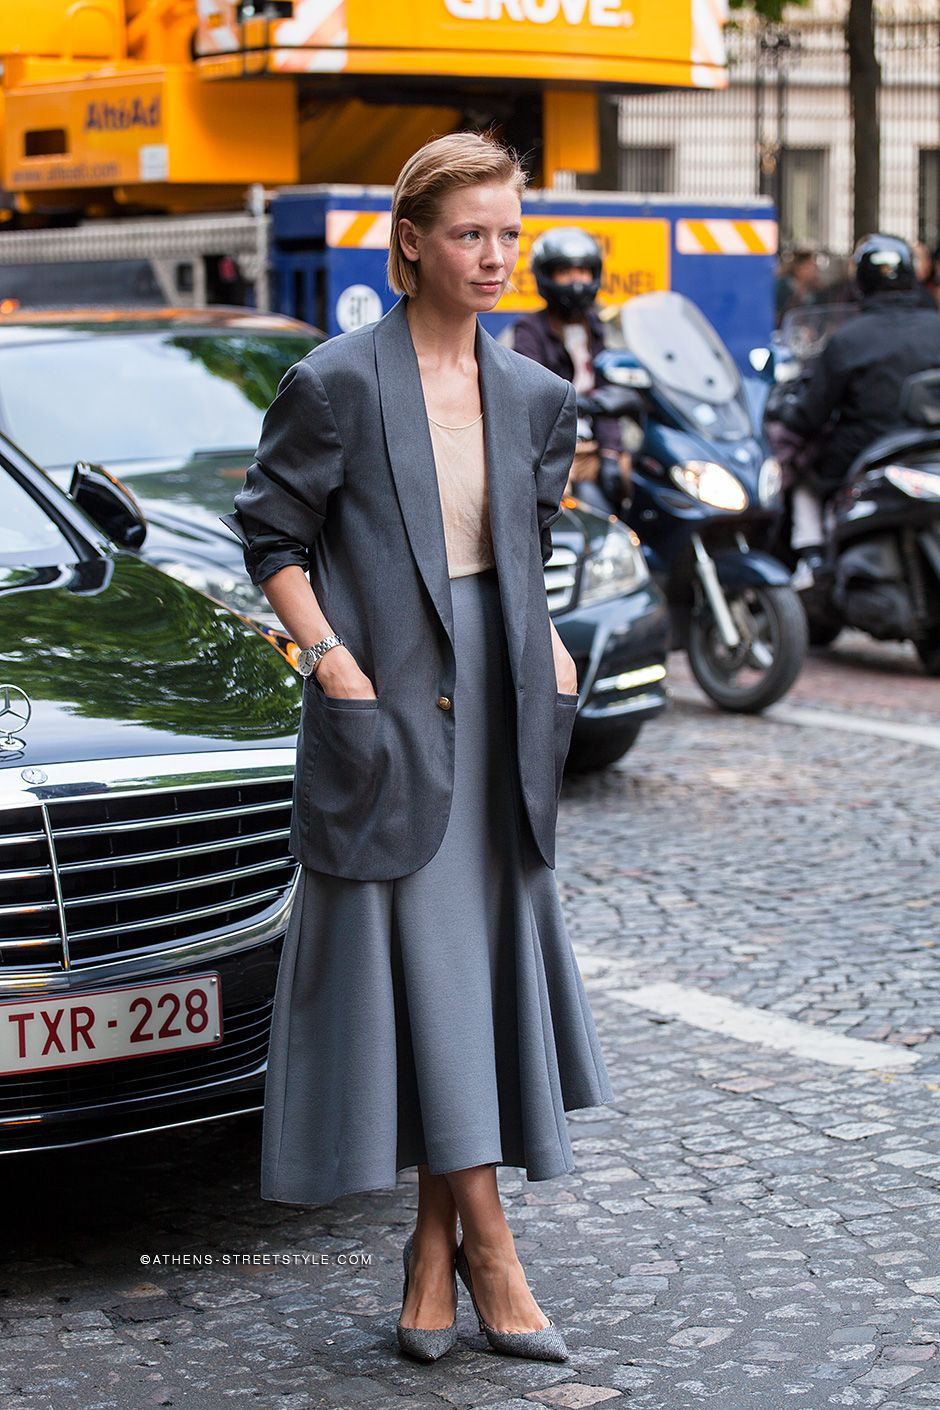 Discussion on this topic: Fall Outfit Ideas To Master Your Street , fall-outfit-ideas-to-master-your-street/